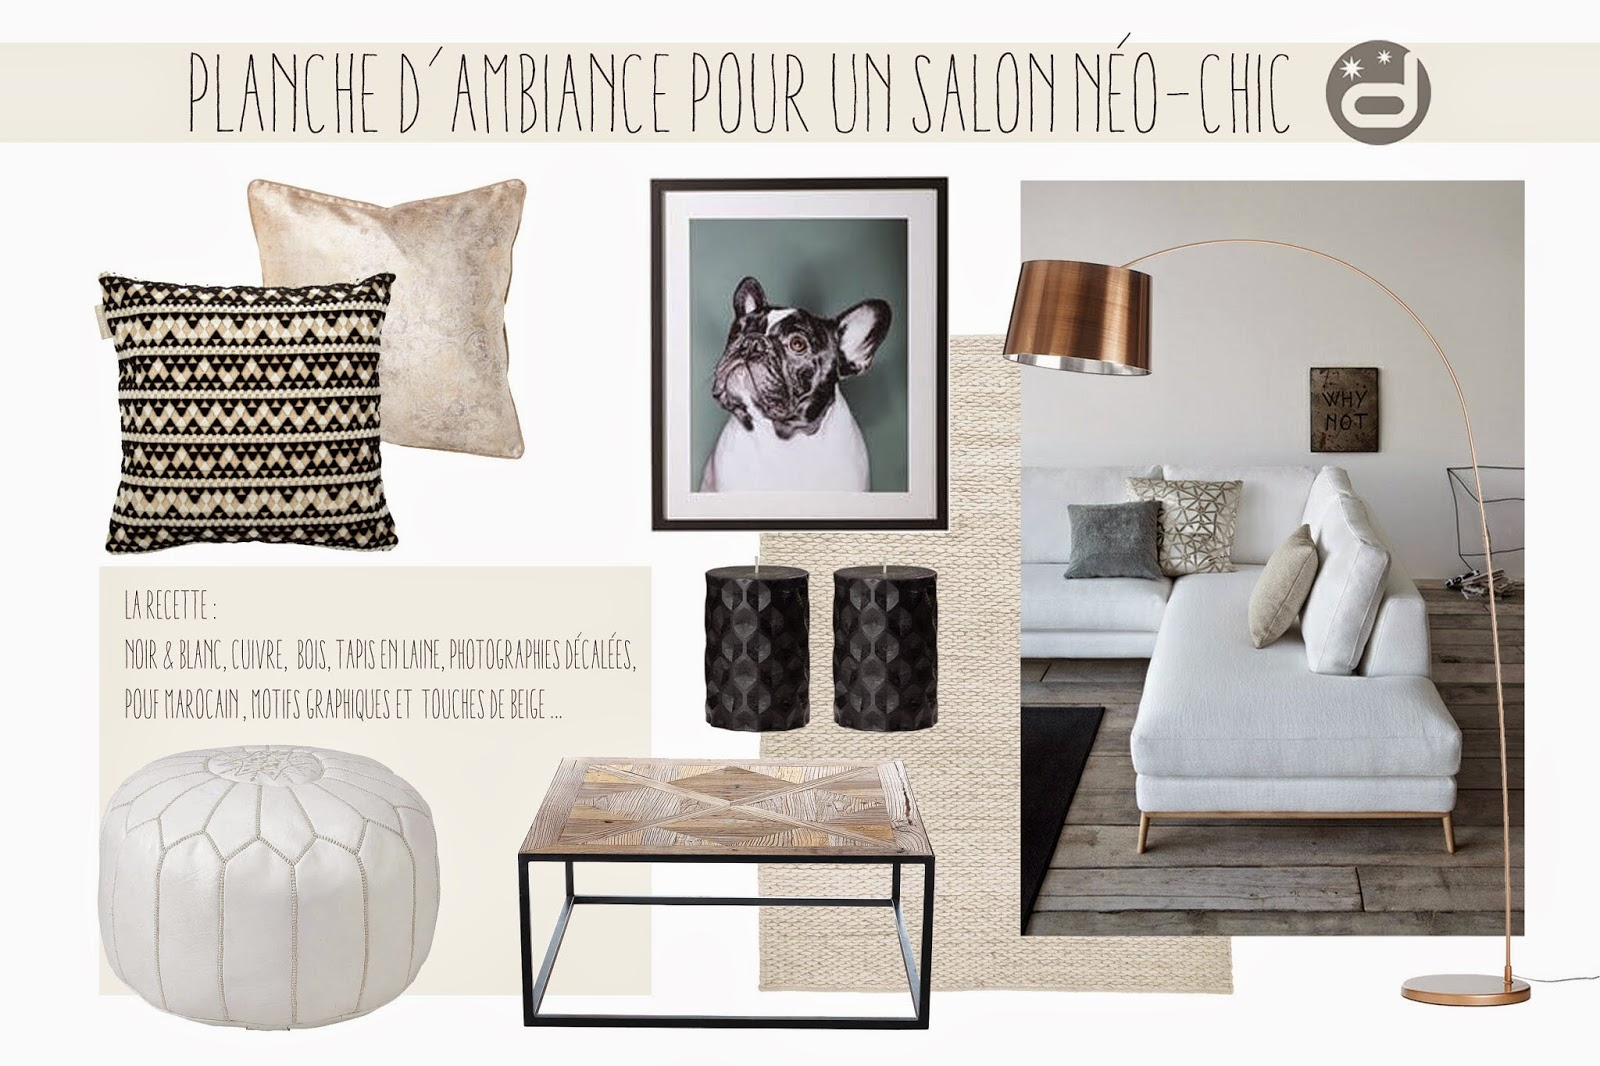 divin 39 id le blog d co planche d 39 ambiance pour un salon n o chic neo chic living room mood board. Black Bedroom Furniture Sets. Home Design Ideas